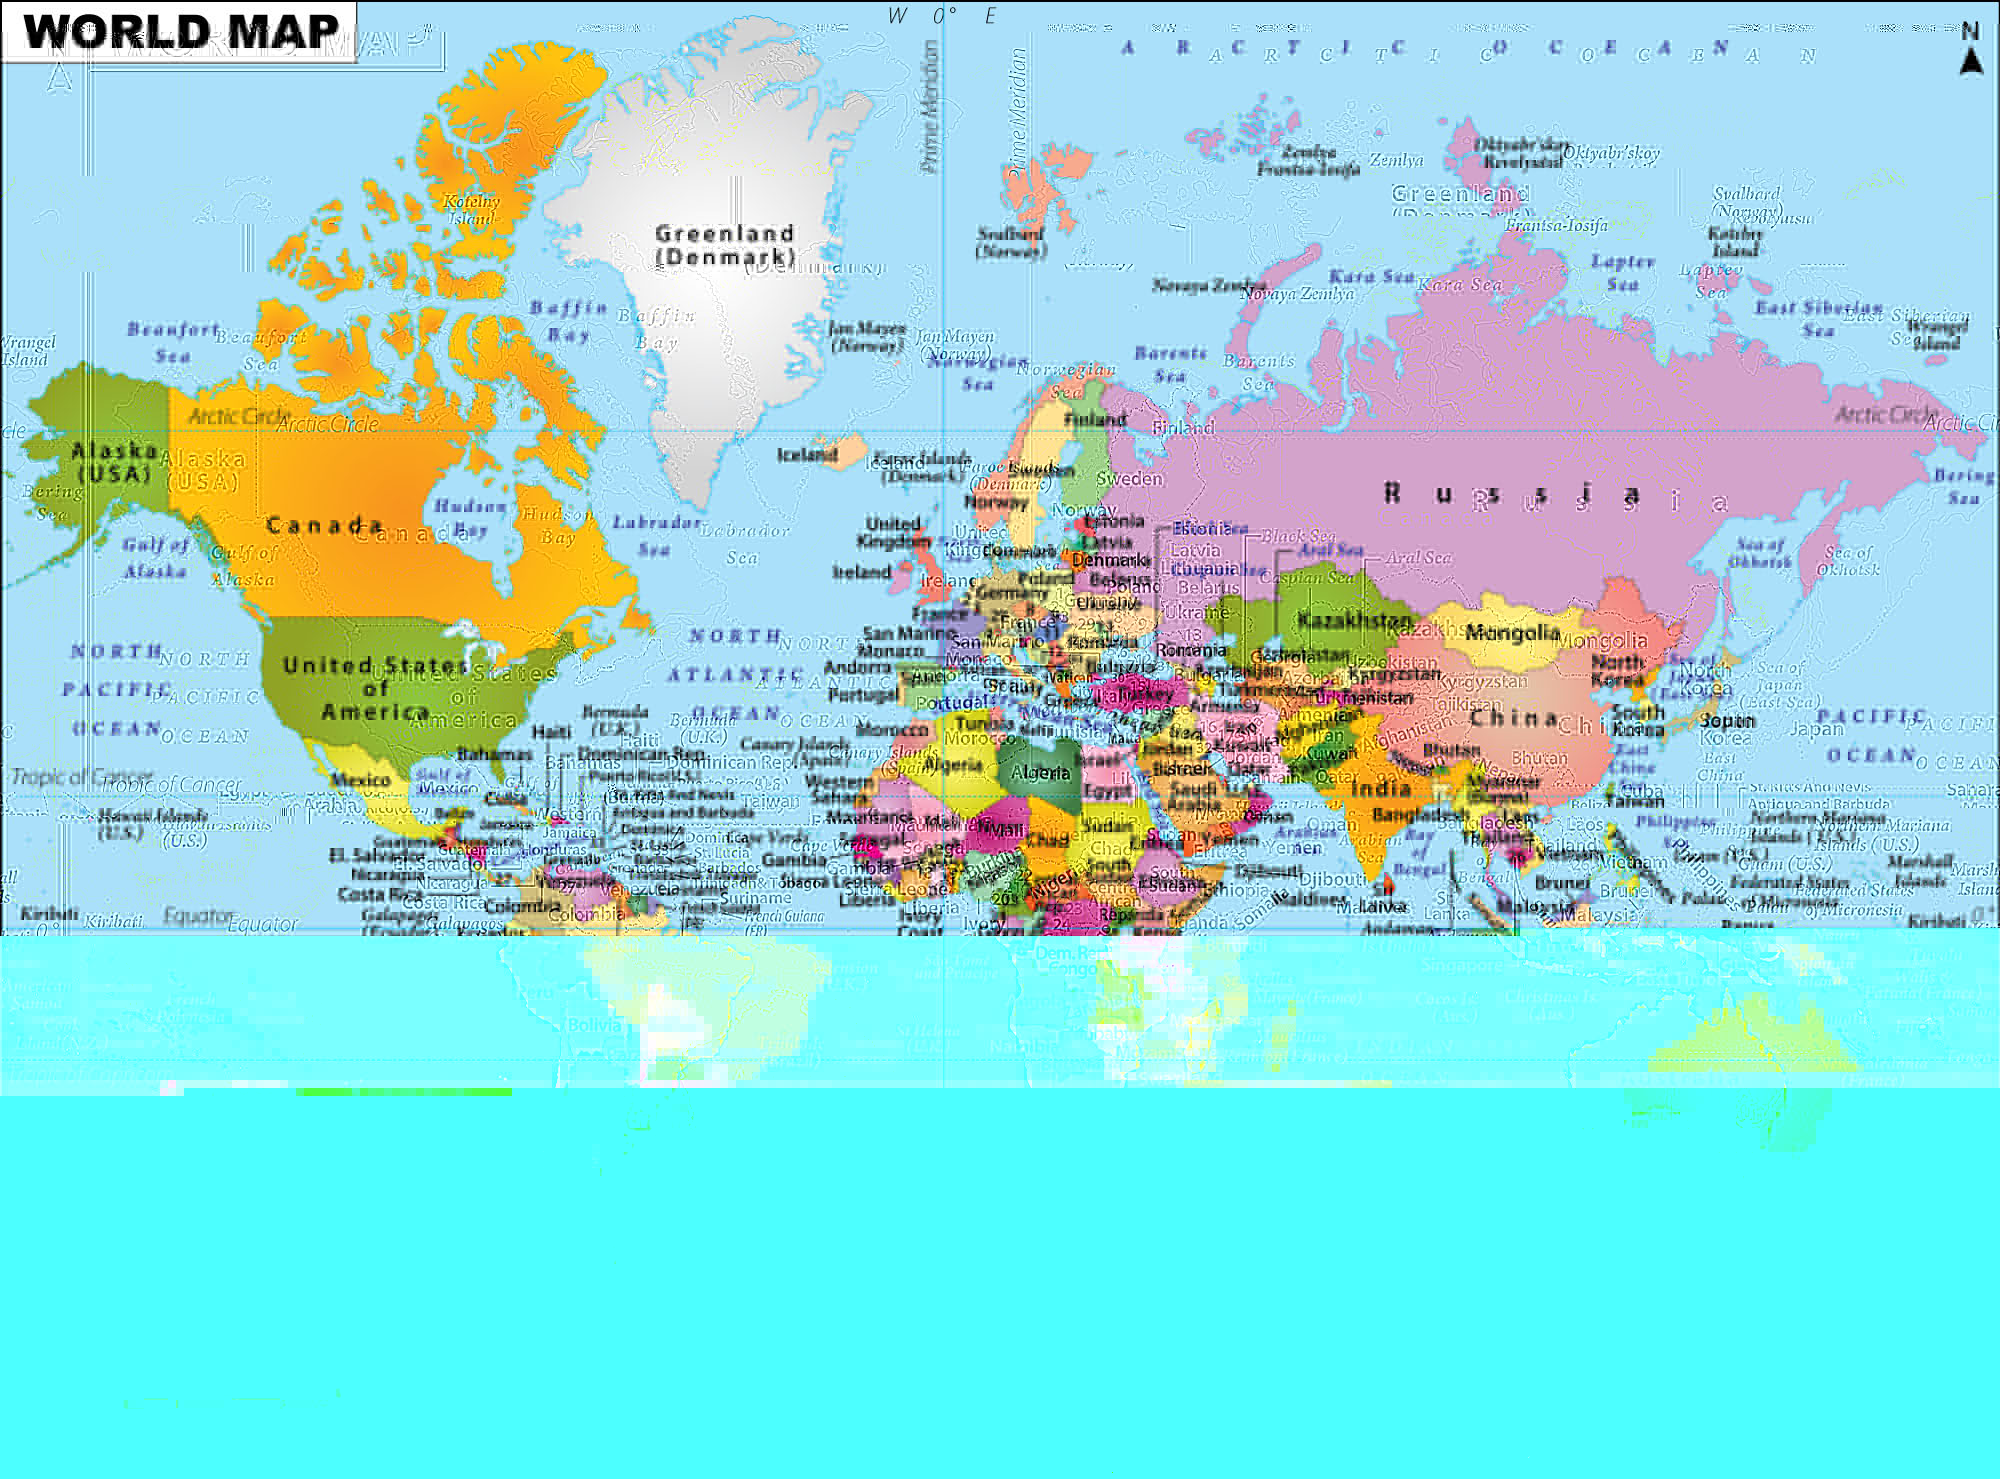 World Map, cut-paste-reverse jpeg